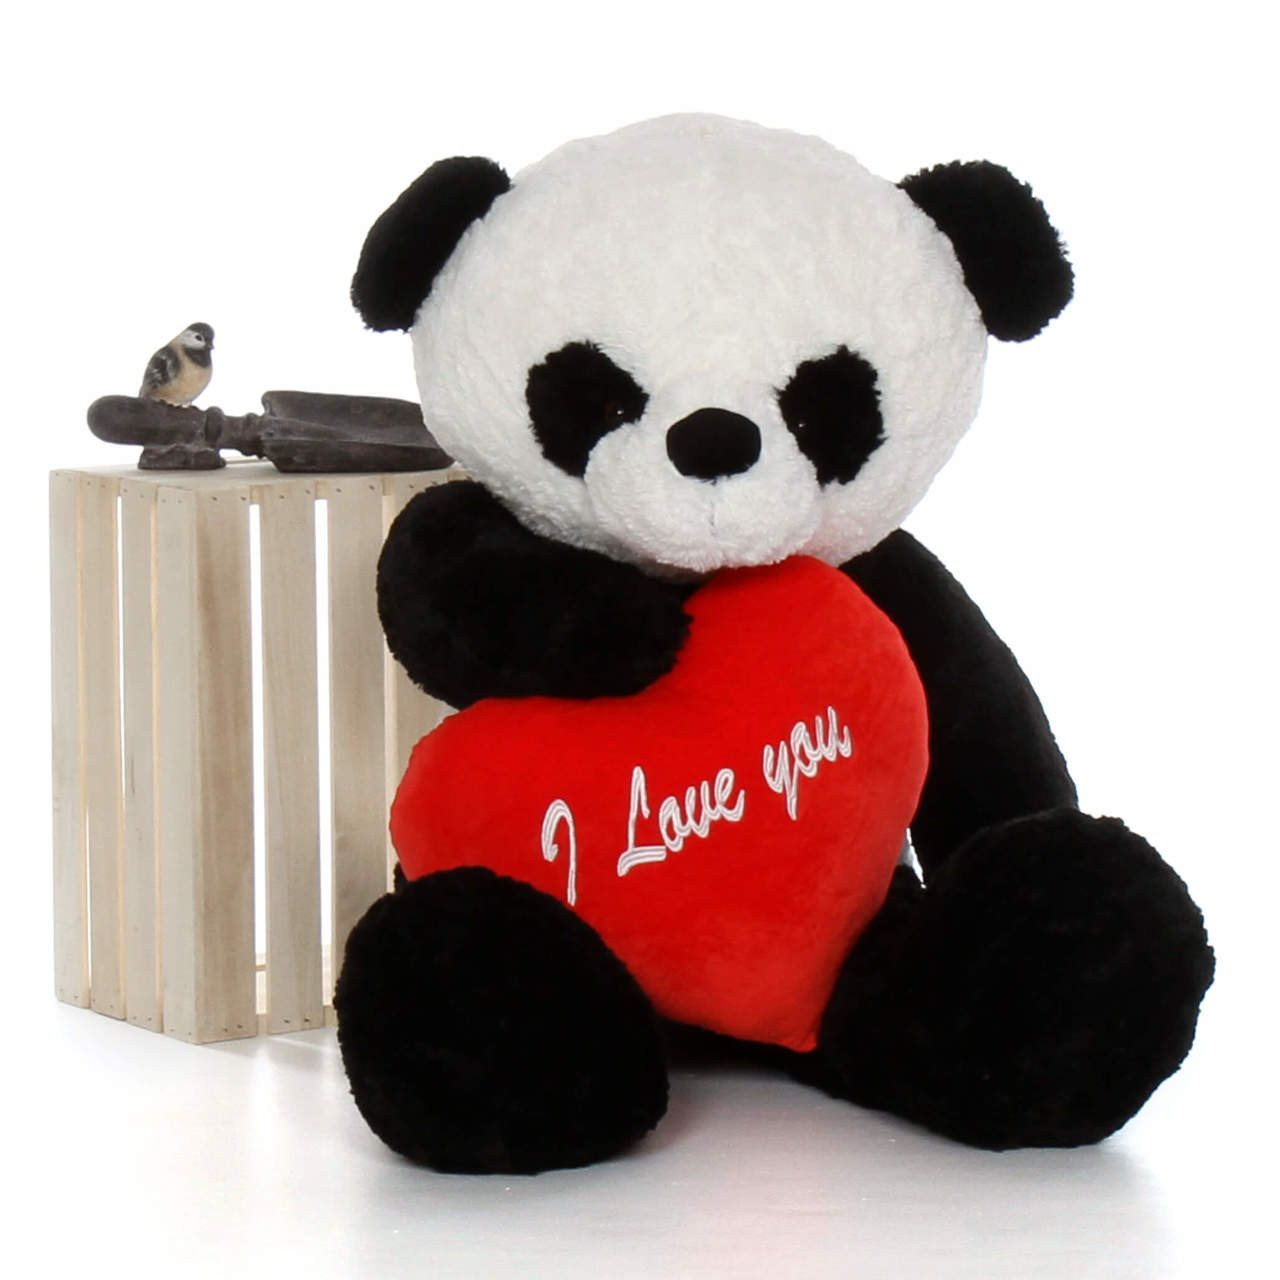 Giant Teddy 4ft Life Size Panda Bear W I Love You Heart Ricky Xiong